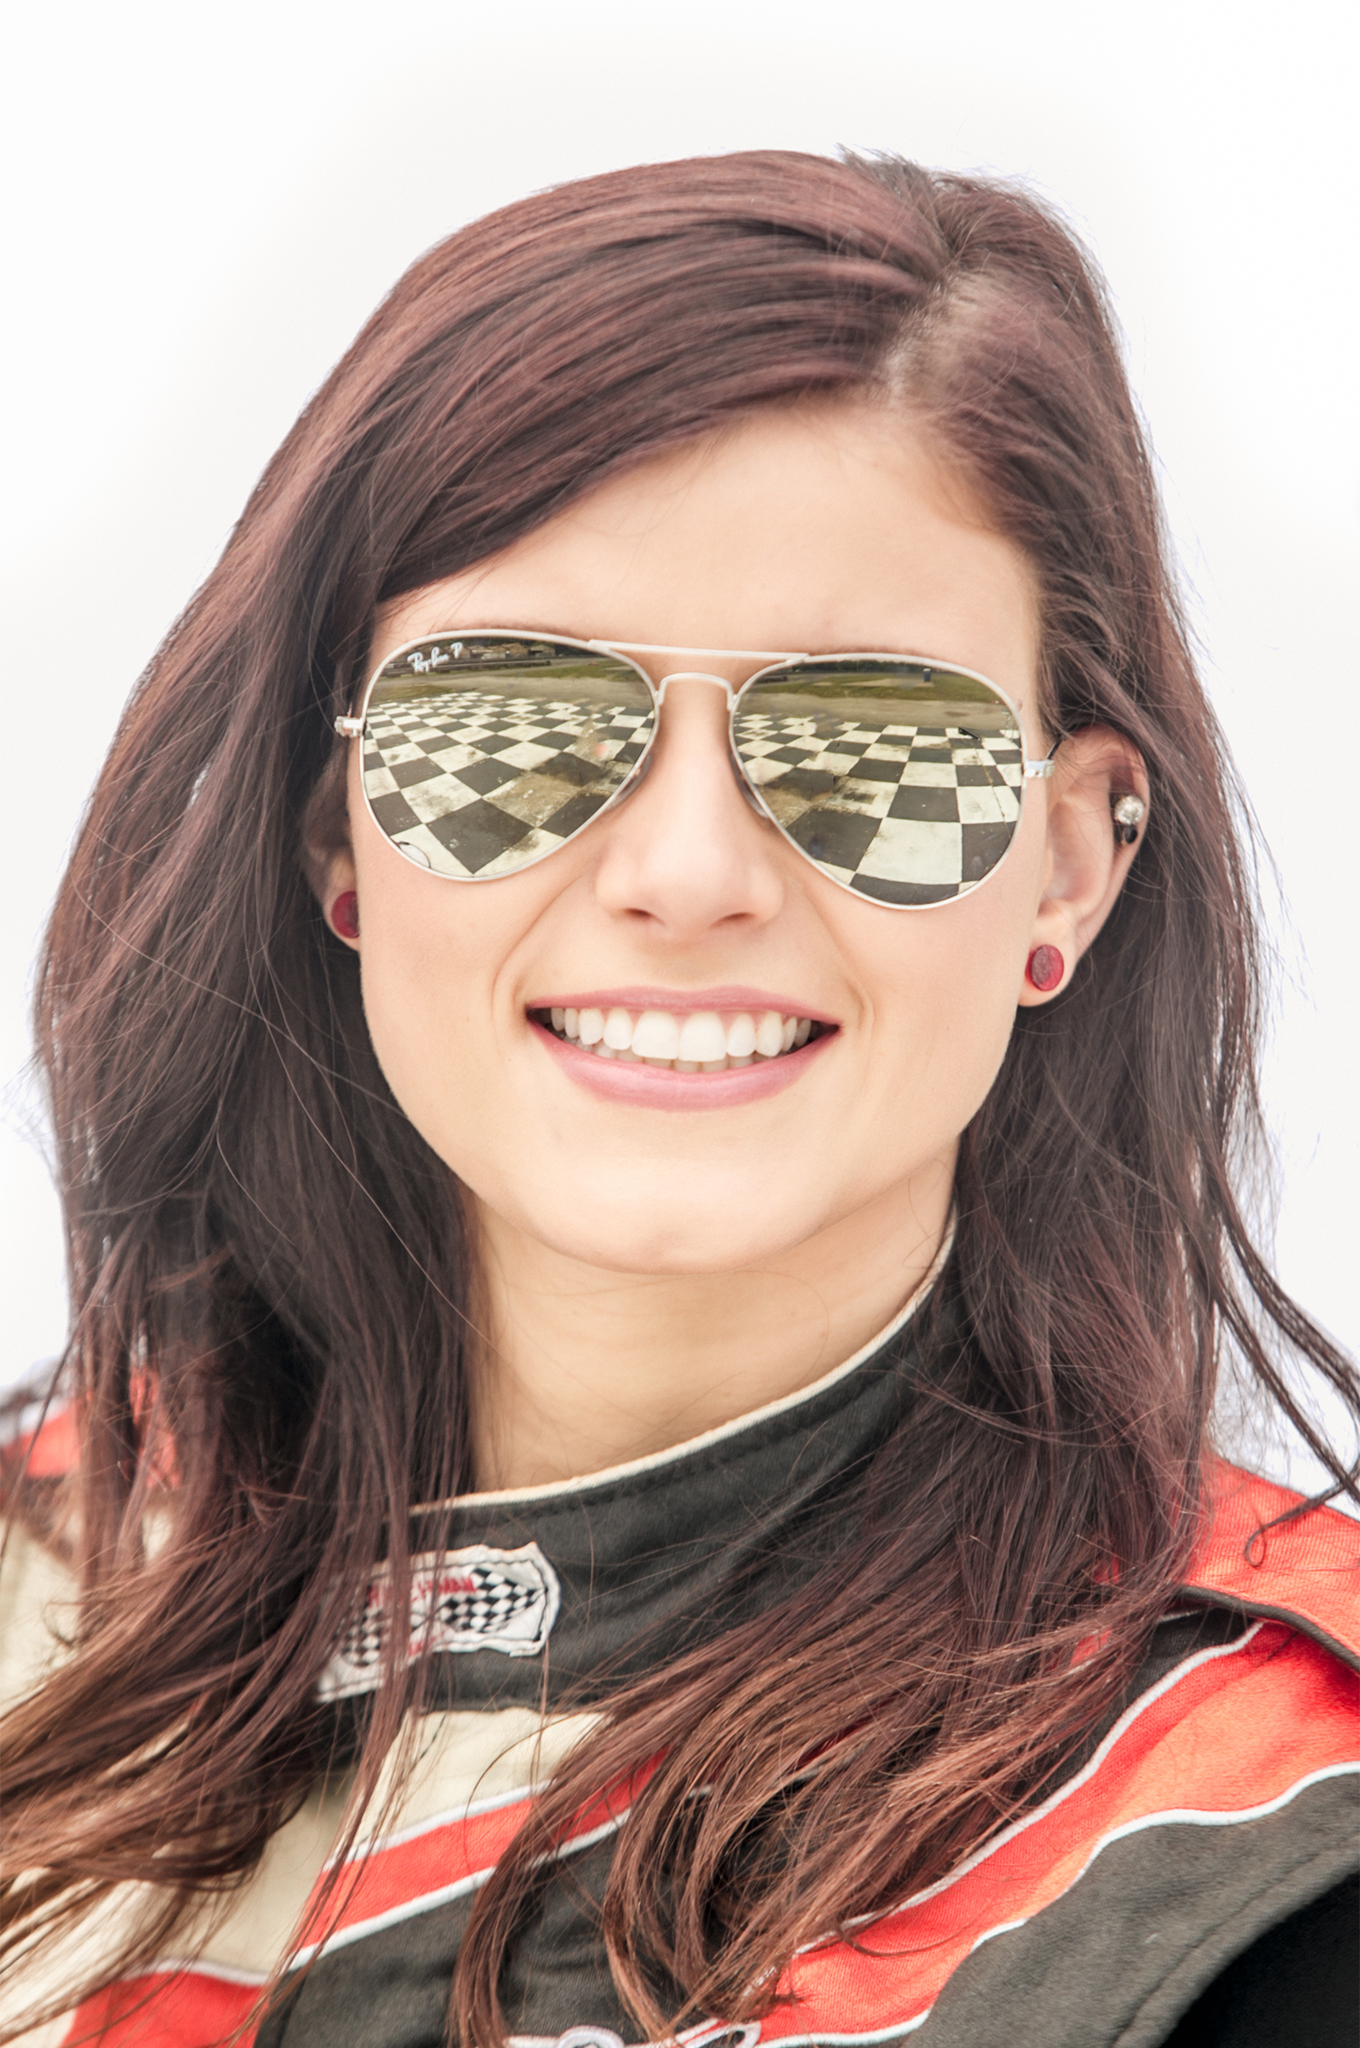 Reagan May's mirrored Ray Bans tell the story of the prize this 21-year-old Wisconsin racer has her sights set on.